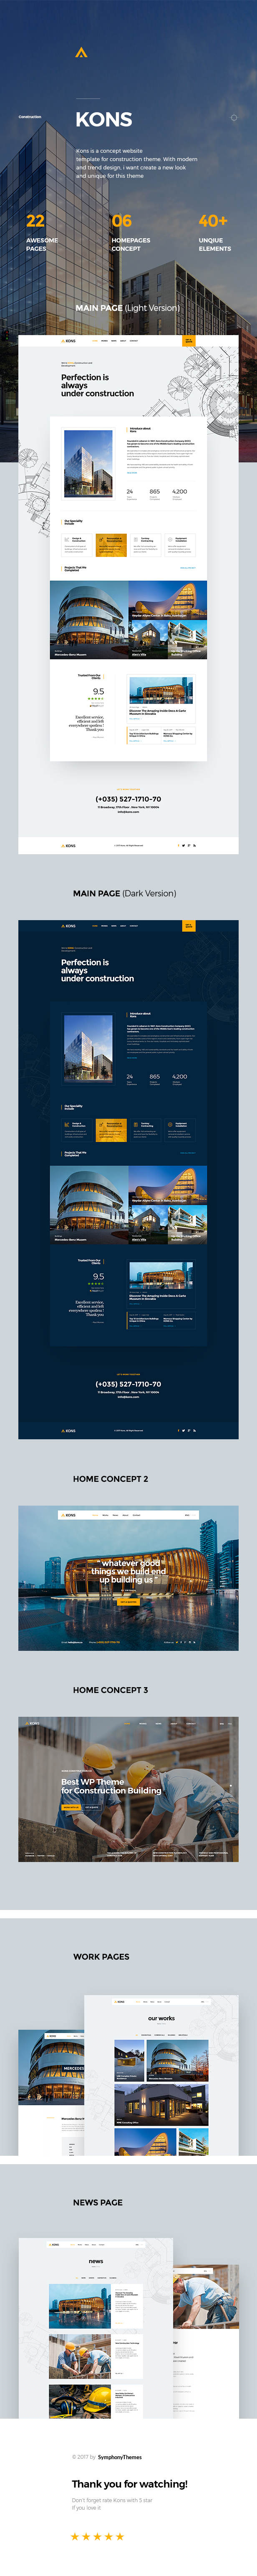 Kons Drupal 8 Construction & Building Theme